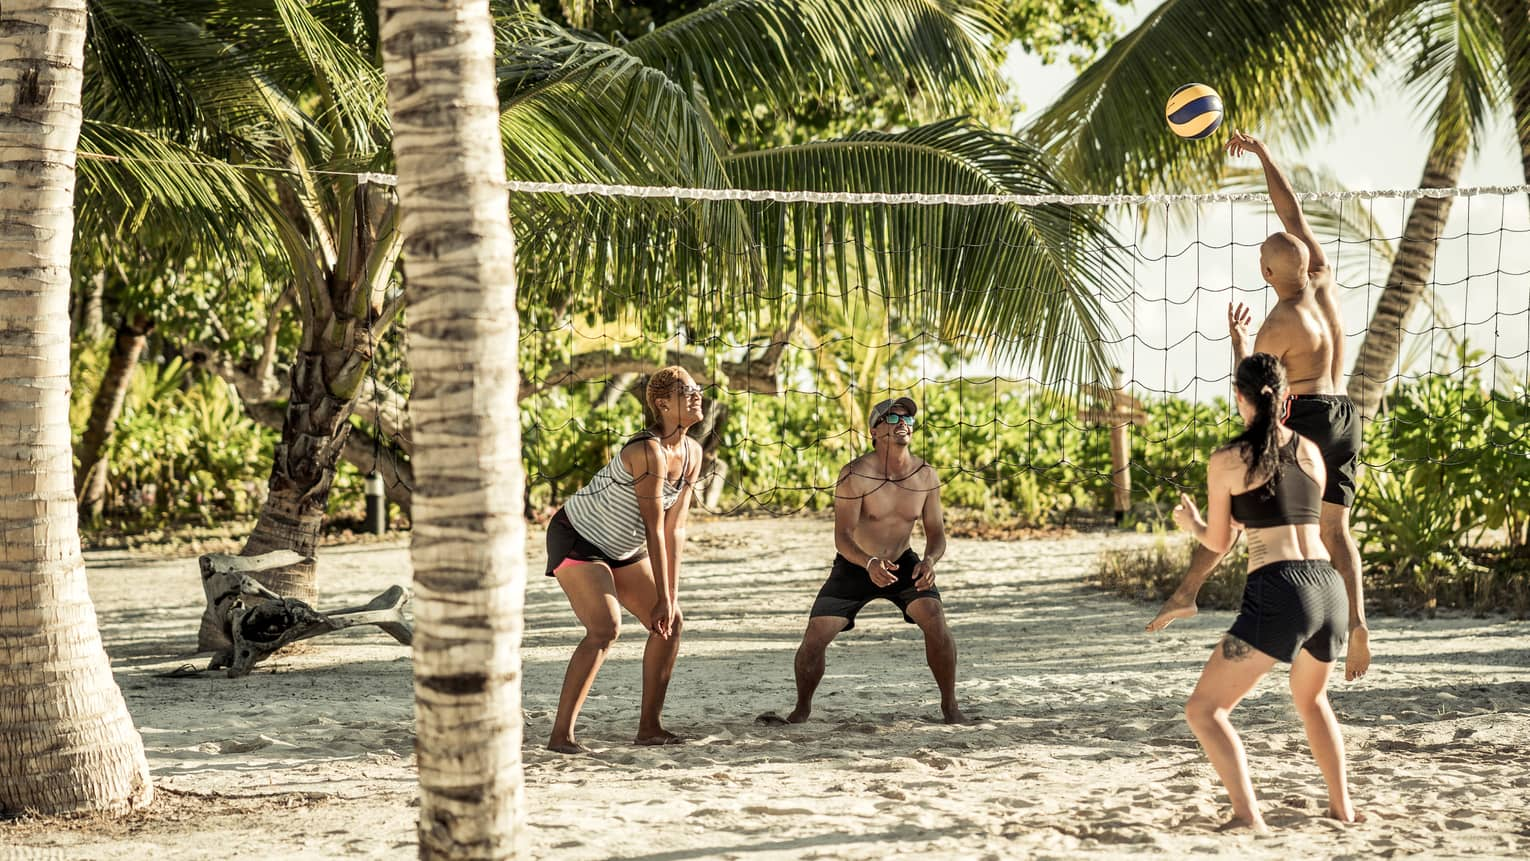 Four people playing volleyball on the beach